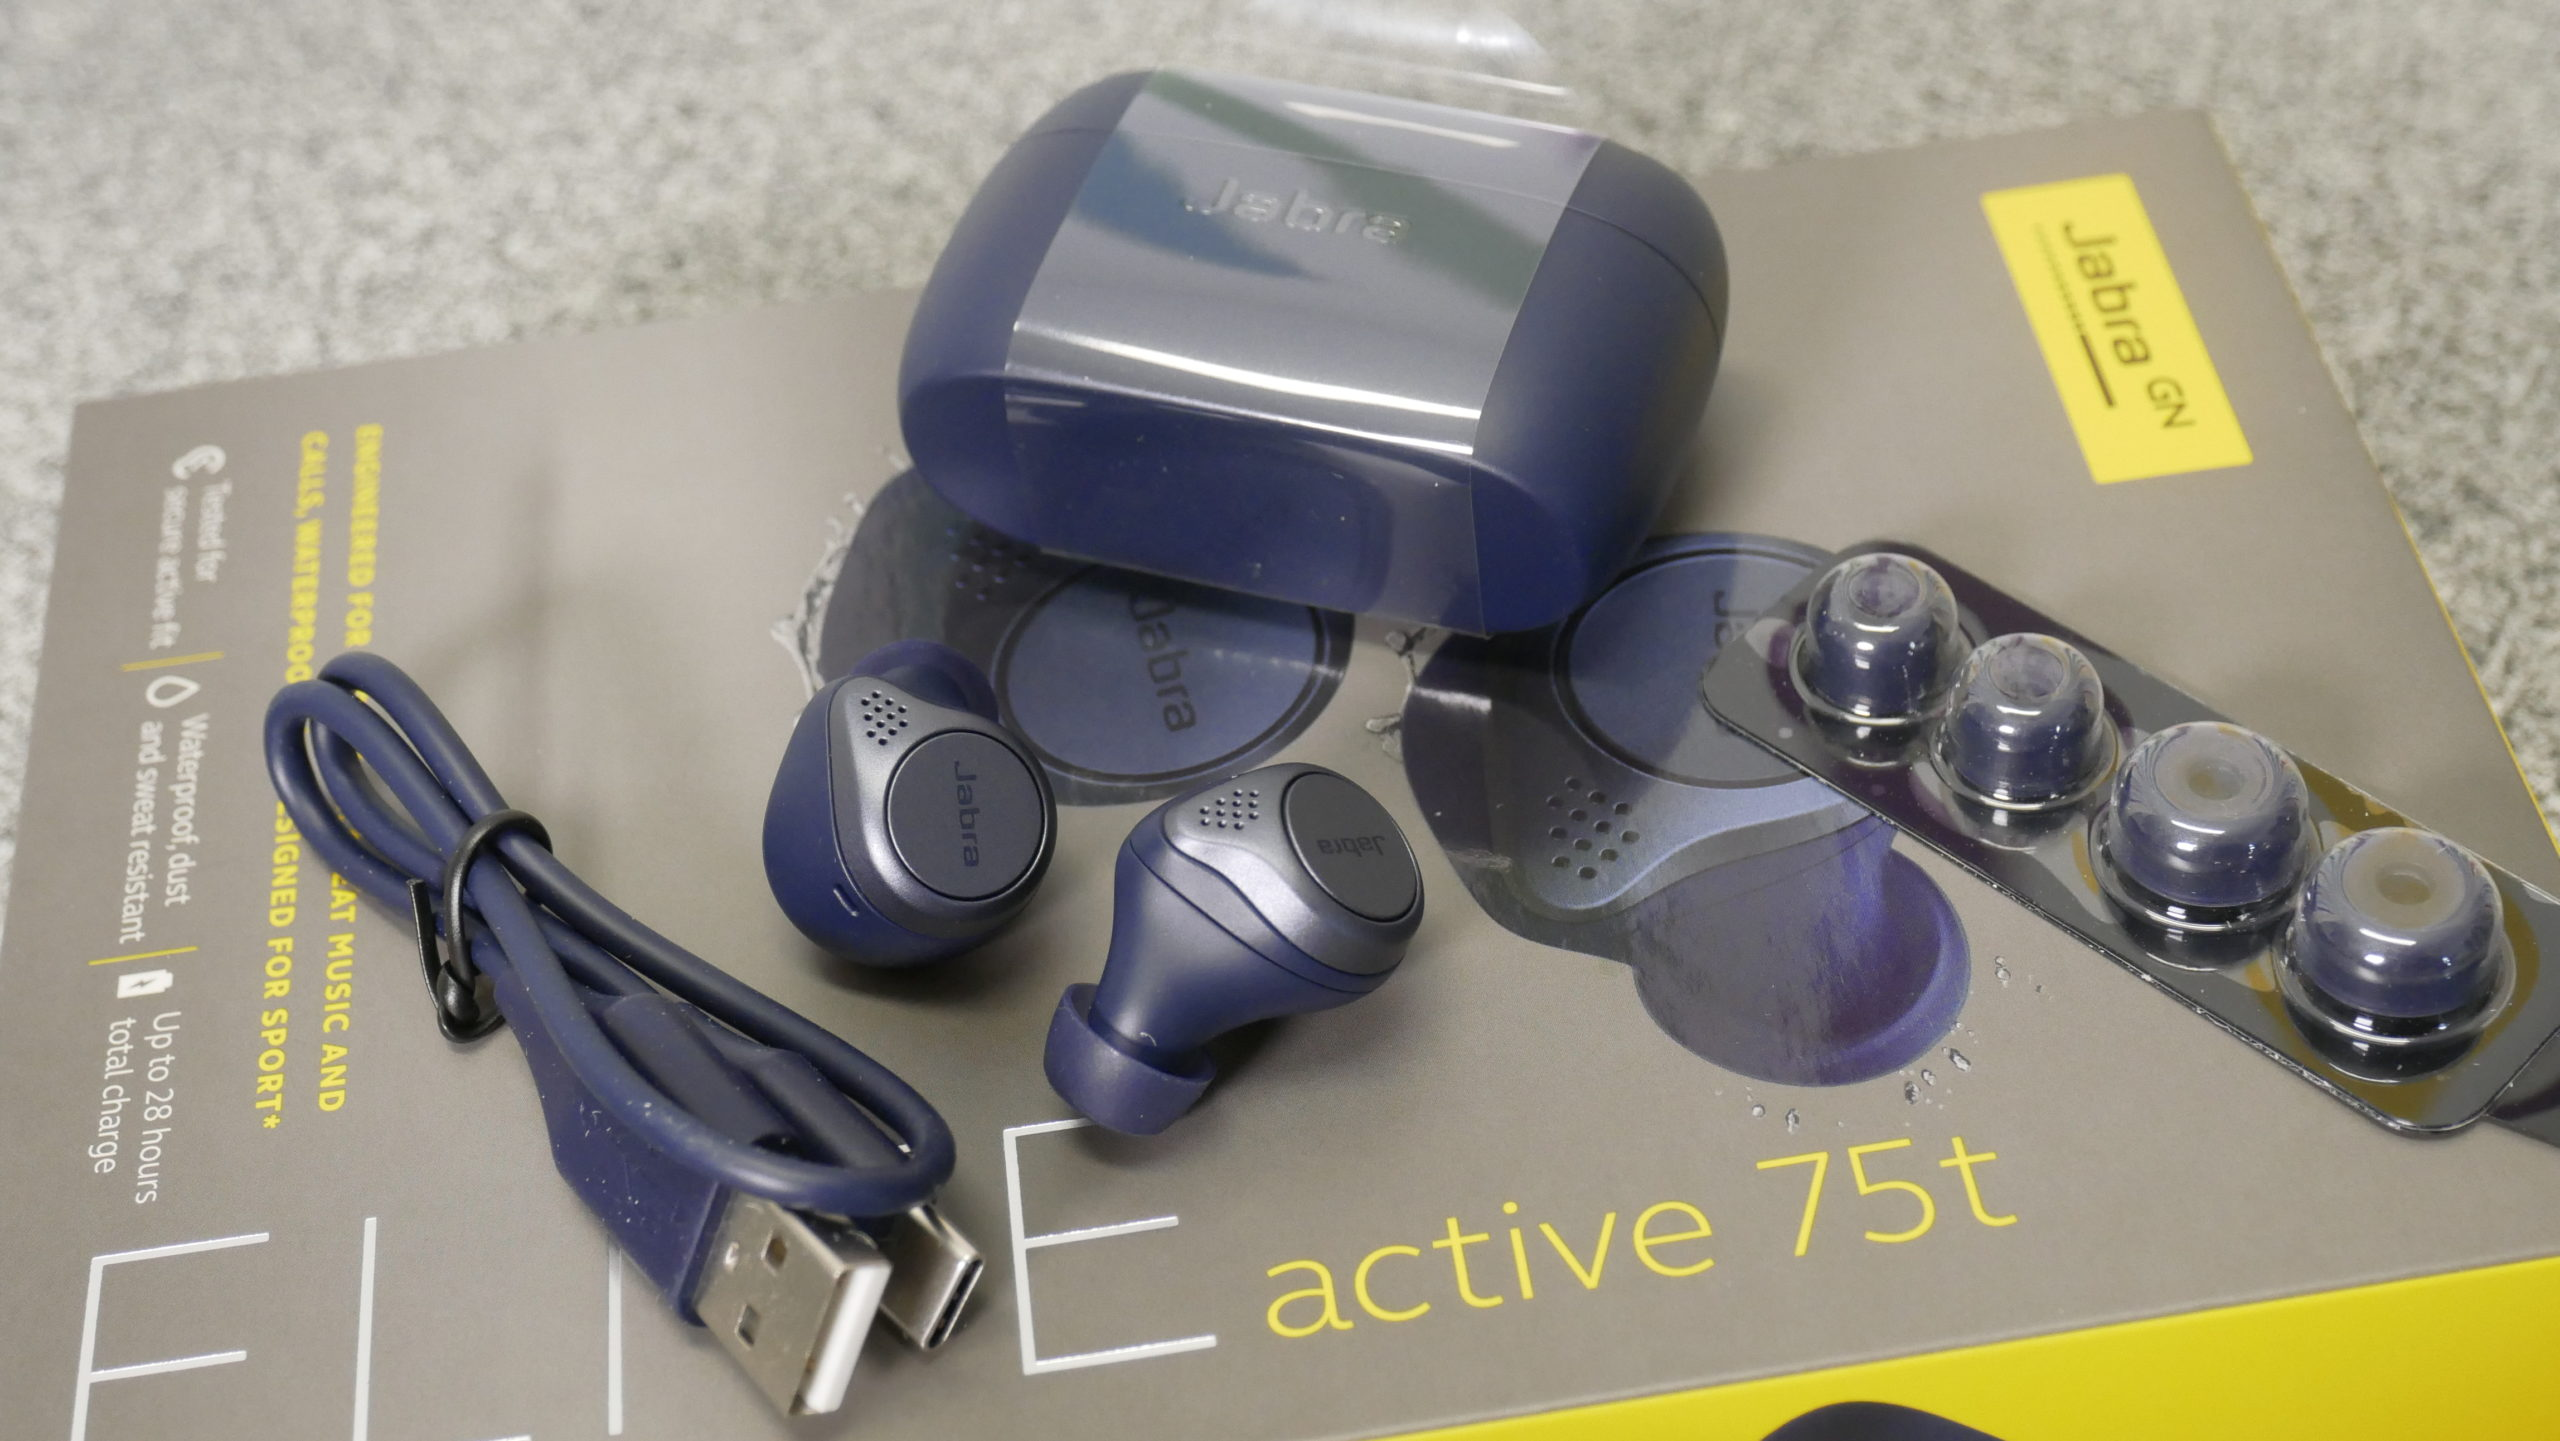 Jabra Elite 75t And Elite Active 75t Review True Wireless Headphones With Very Good Sound And Waterproof Page 3 Igor Slab